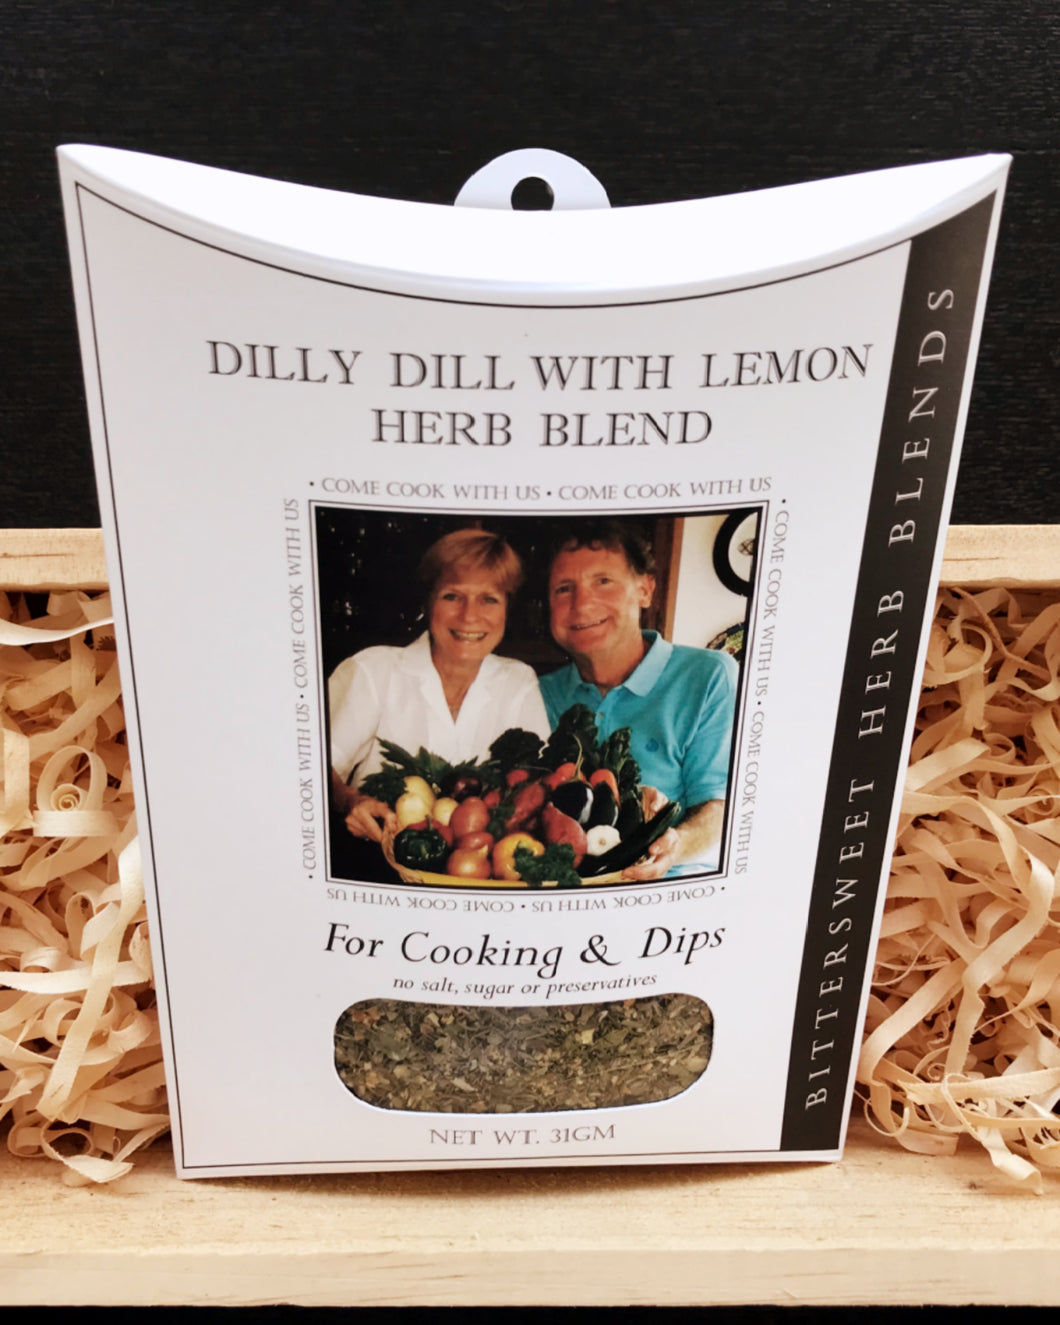 Dilly Dilly Dill and Lemon Blend